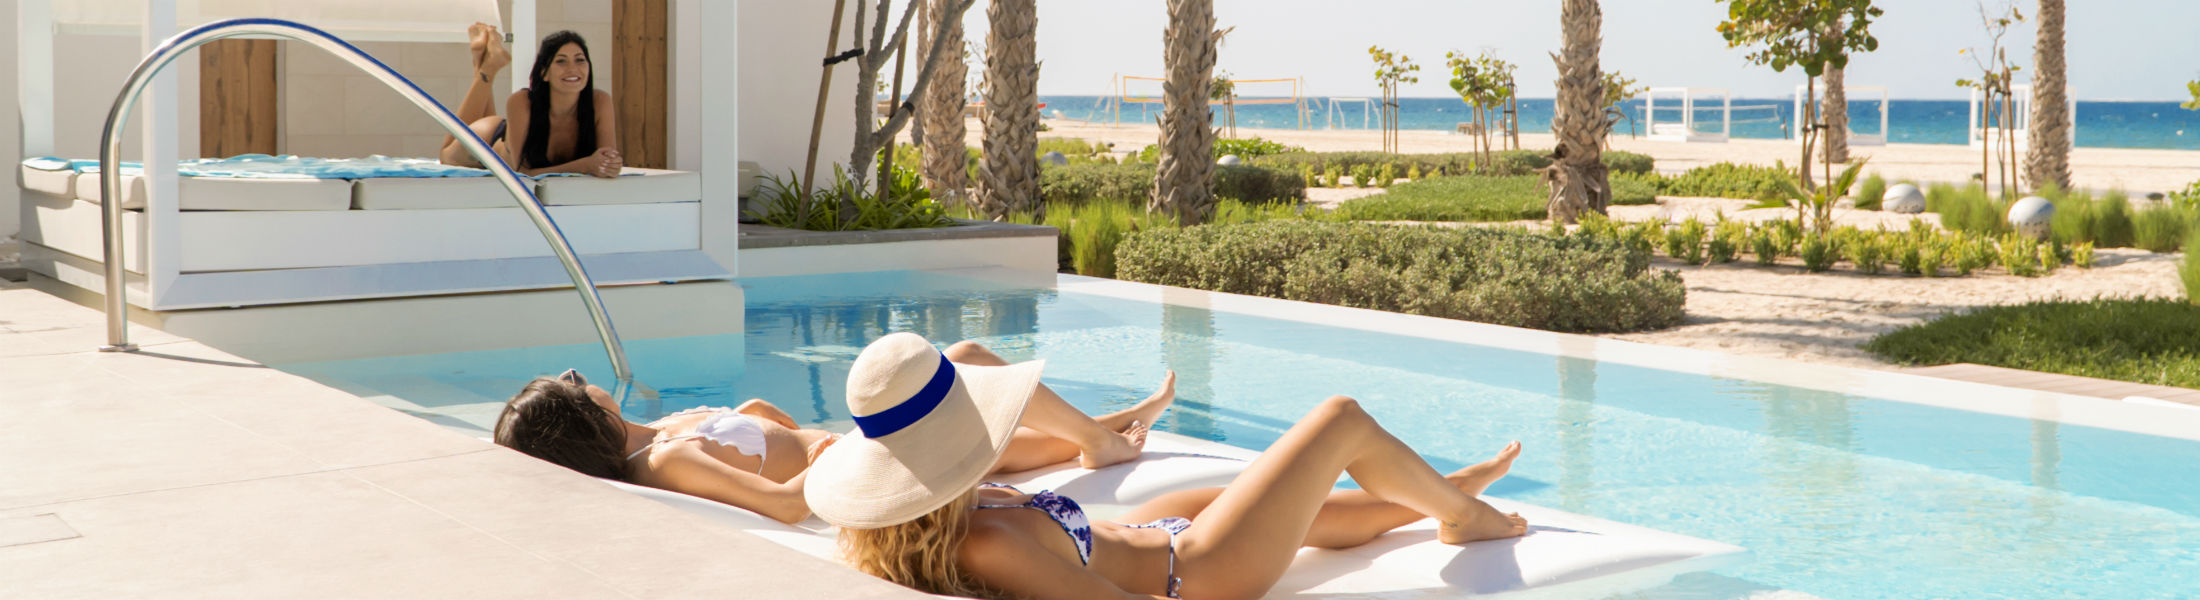 Relaxing at the Beach Villa pool Nikki Beach Resort & Spa Dubai